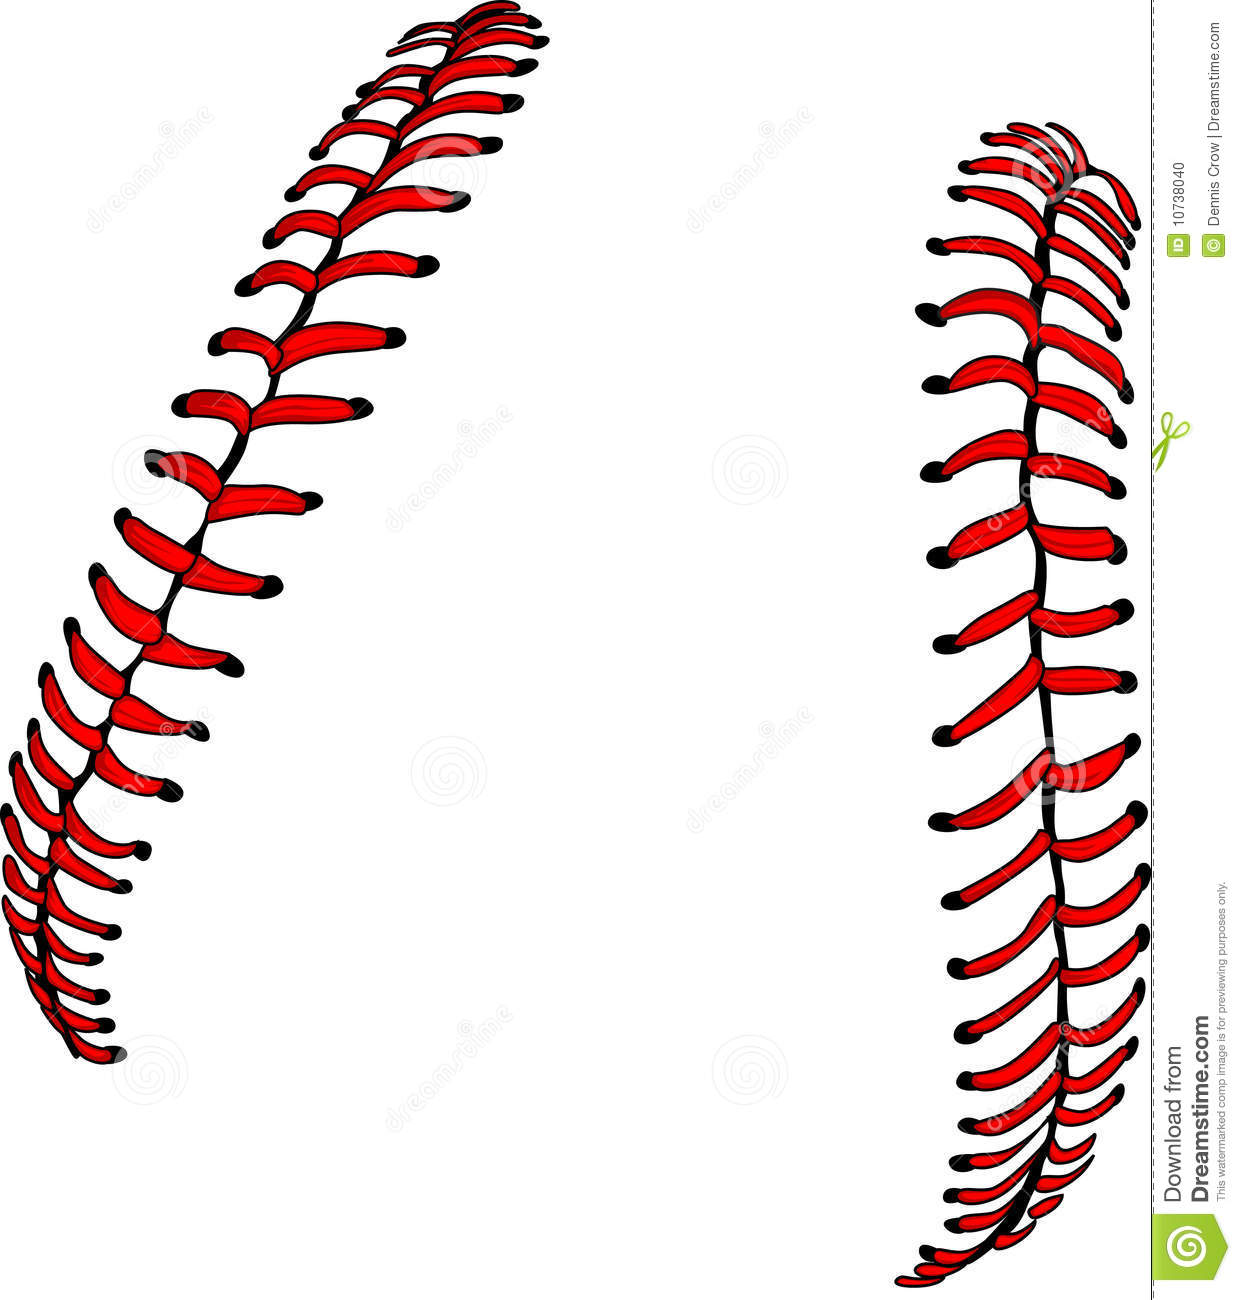 vector baseball or softball laces stock vector illustration of clipart stitches 10738040. Black Bedroom Furniture Sets. Home Design Ideas